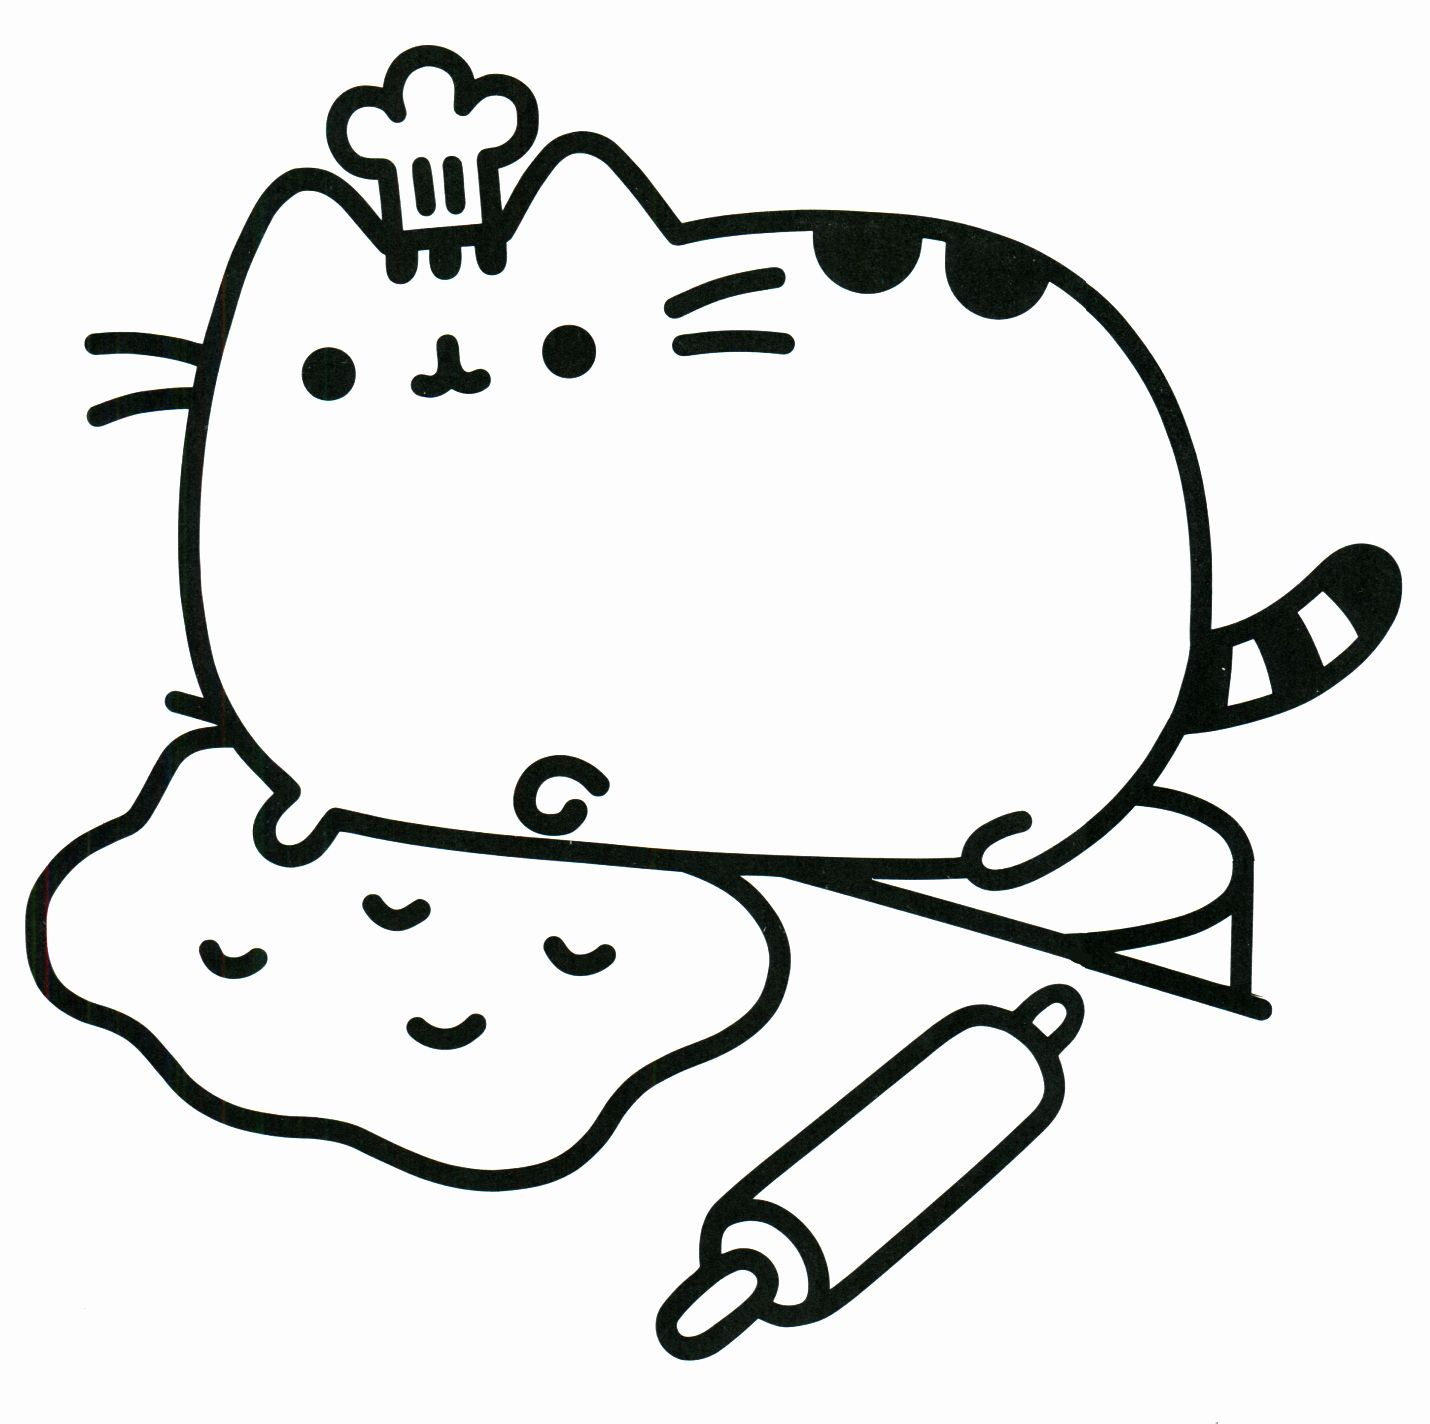 Pusheen Coloring Pages Printable Luxury Pusheen Coloring Pages Best Coloring Pages For Kids Cat Coloring Page Pusheen Coloring Pages Food Coloring Pages